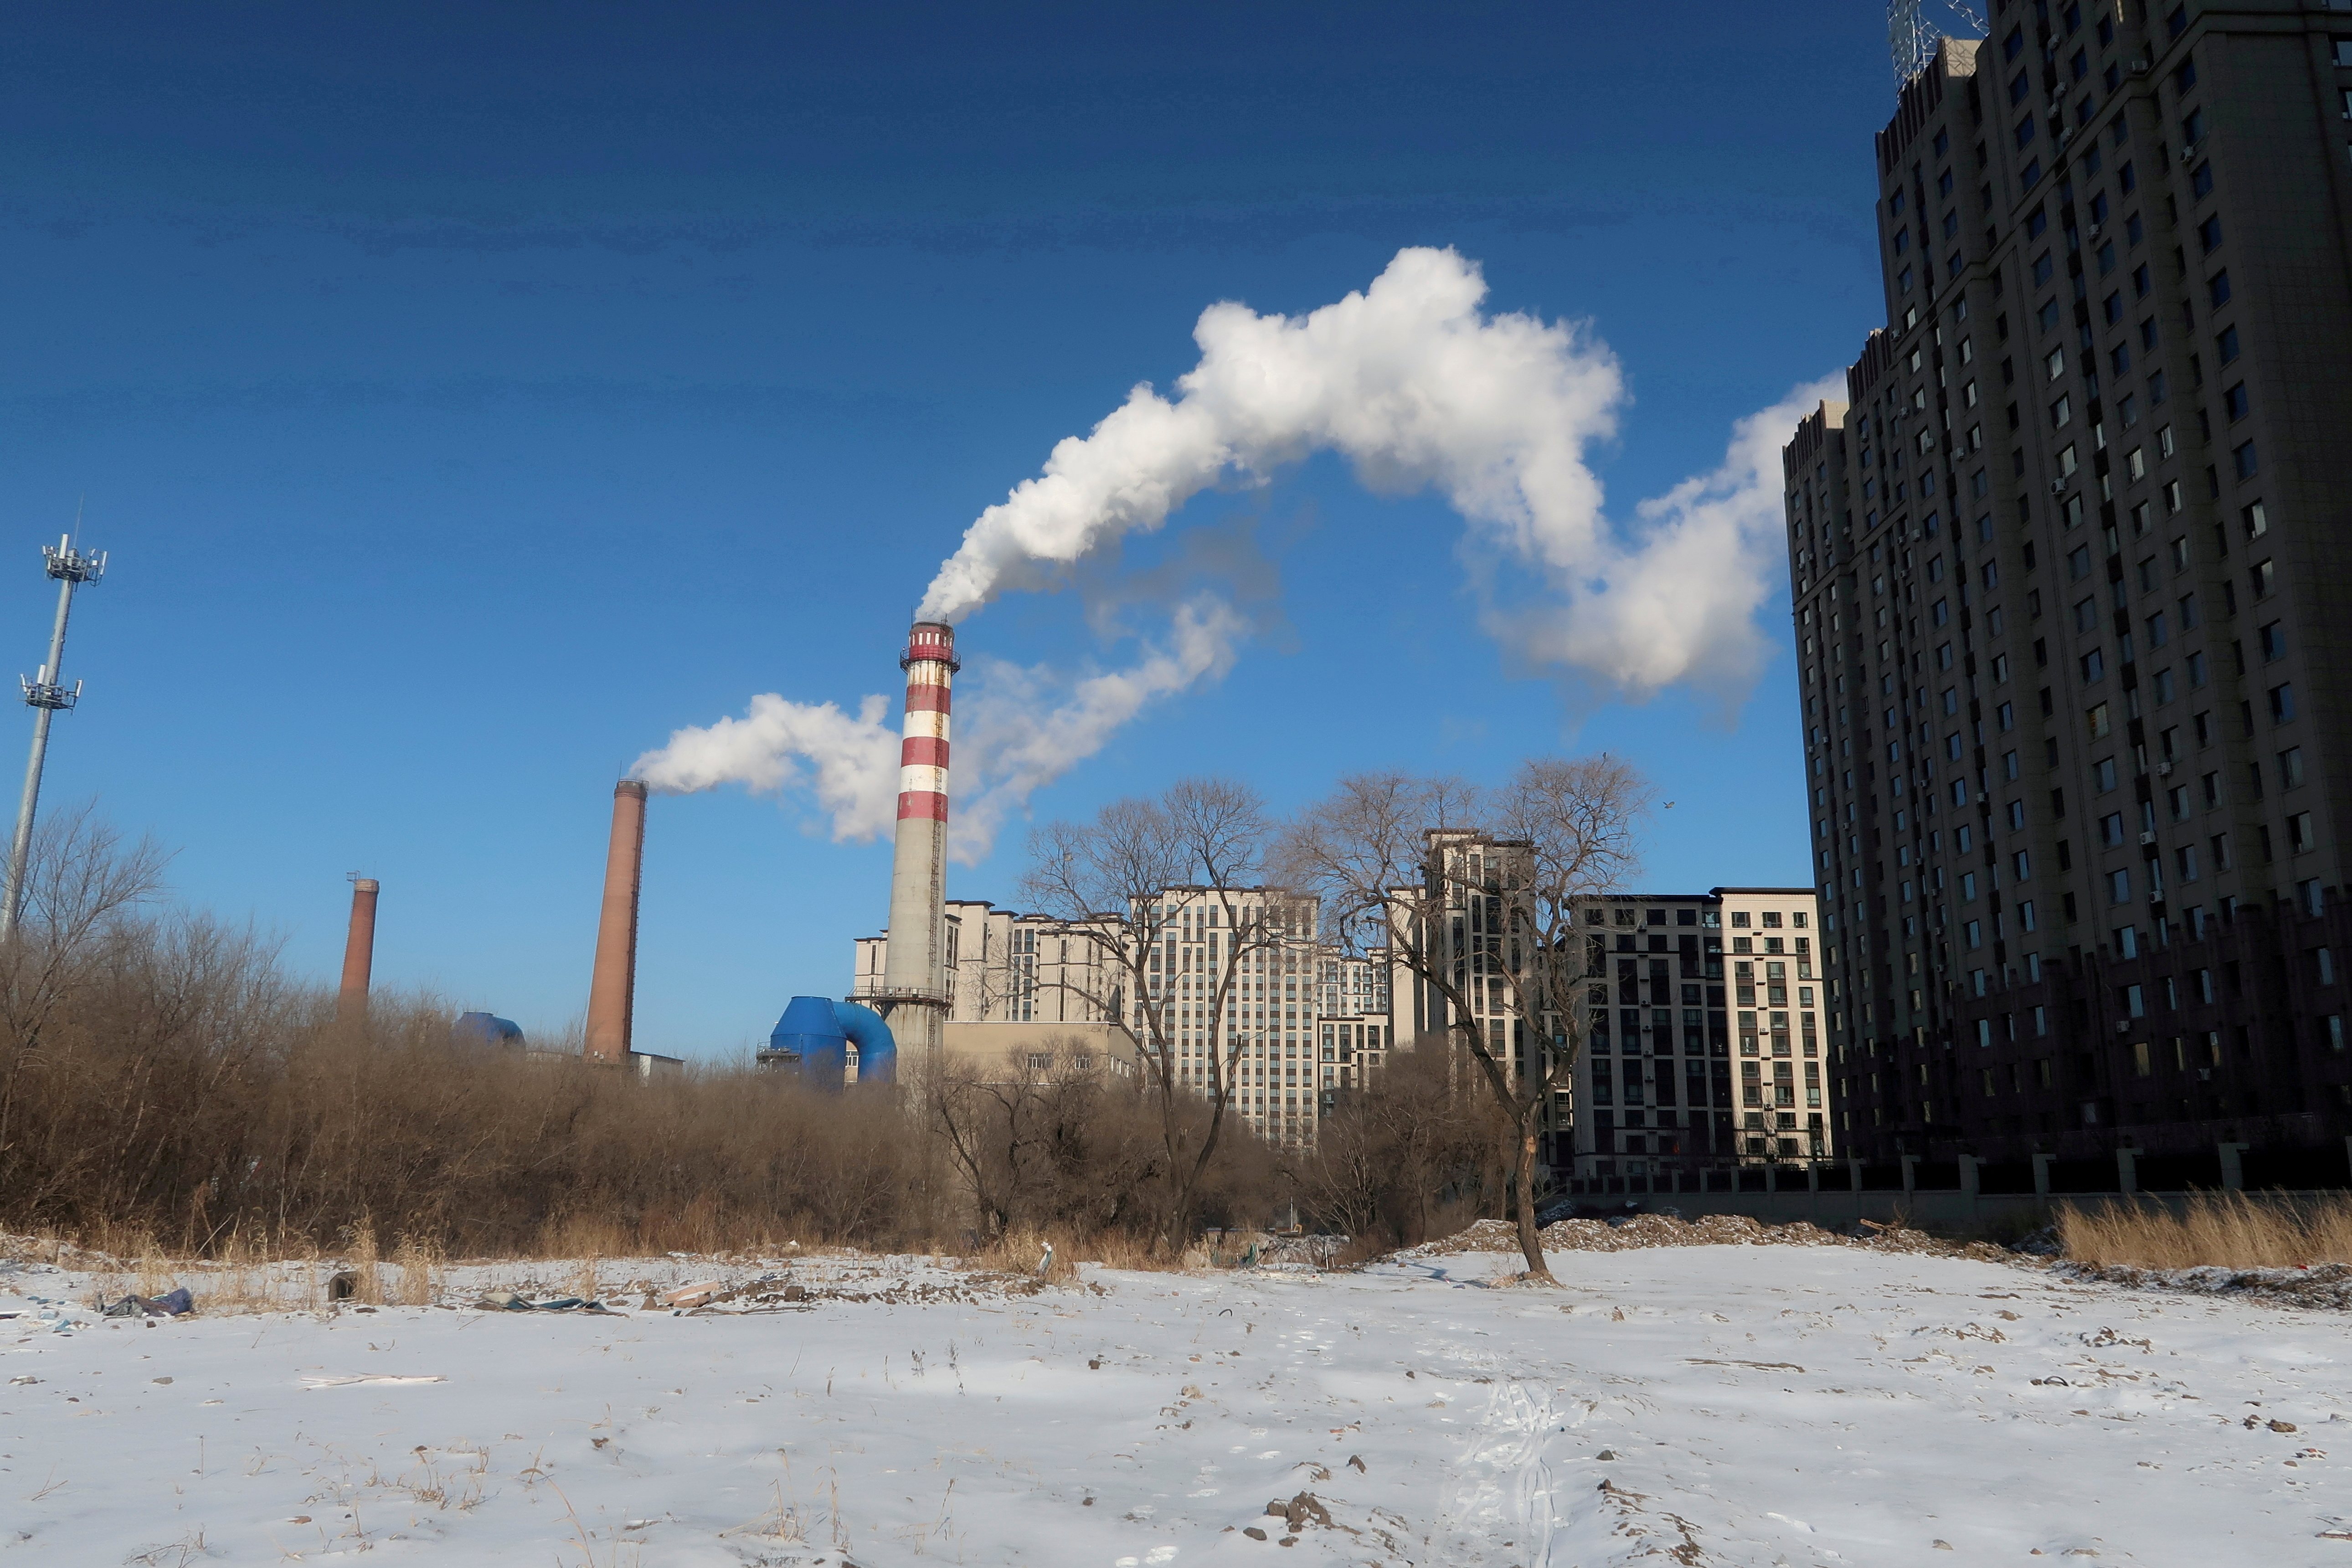 A coal-fired heating complex is seen behind snow-covered ground in Harbin, Heilongjiang province, China November 15, 2019.  REUTERS/Muyu Xu/File Photo/File Photo